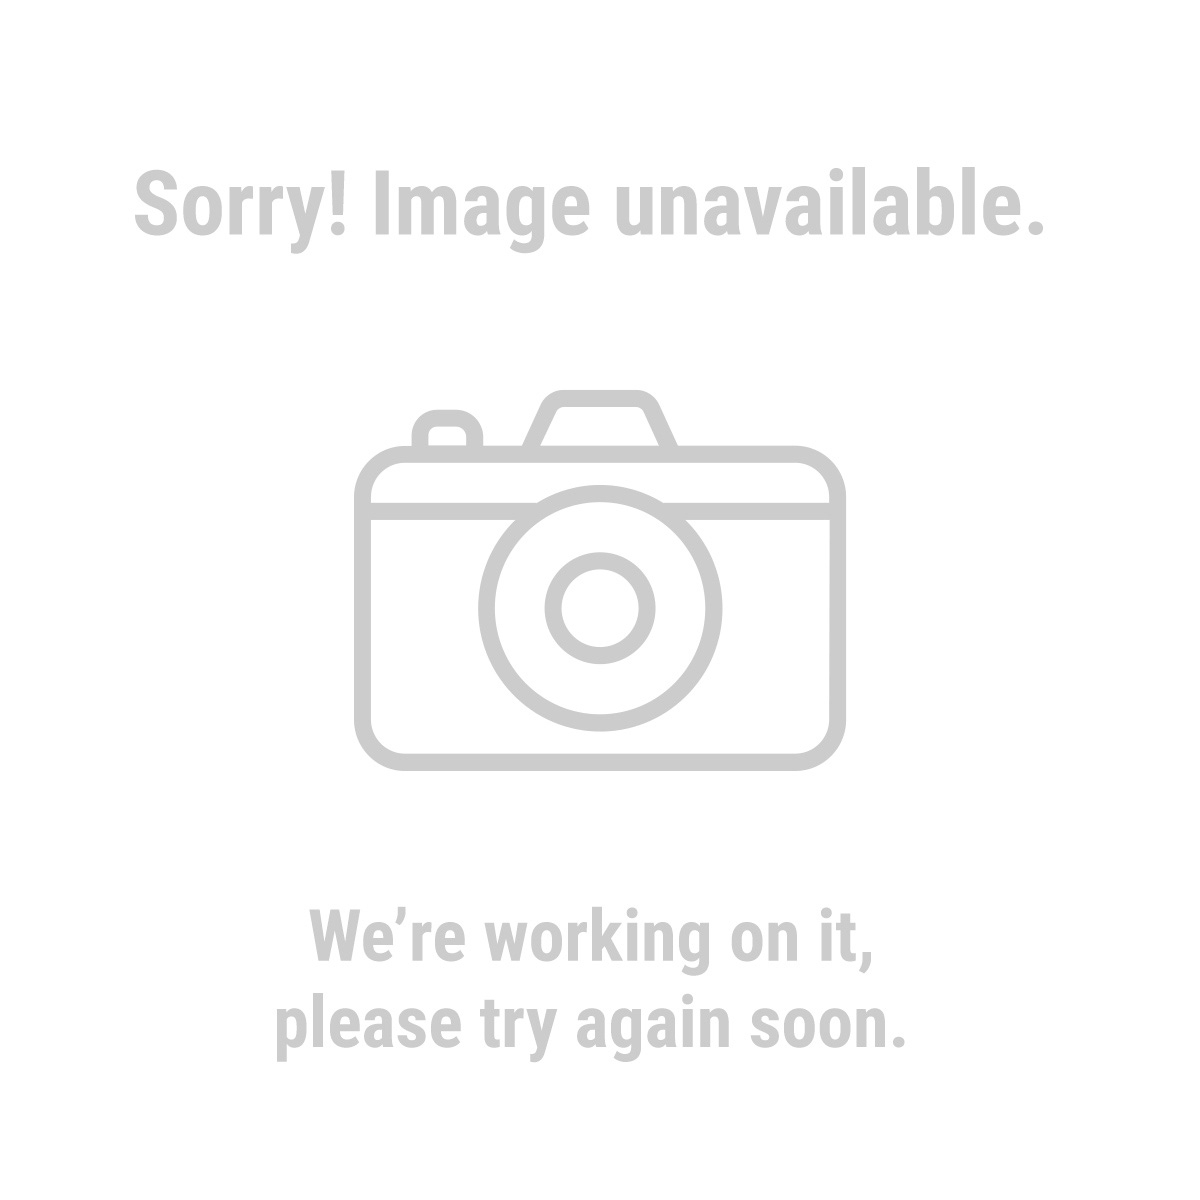 Central Forge® 63189 6 in. Swivel Vise with Anvil